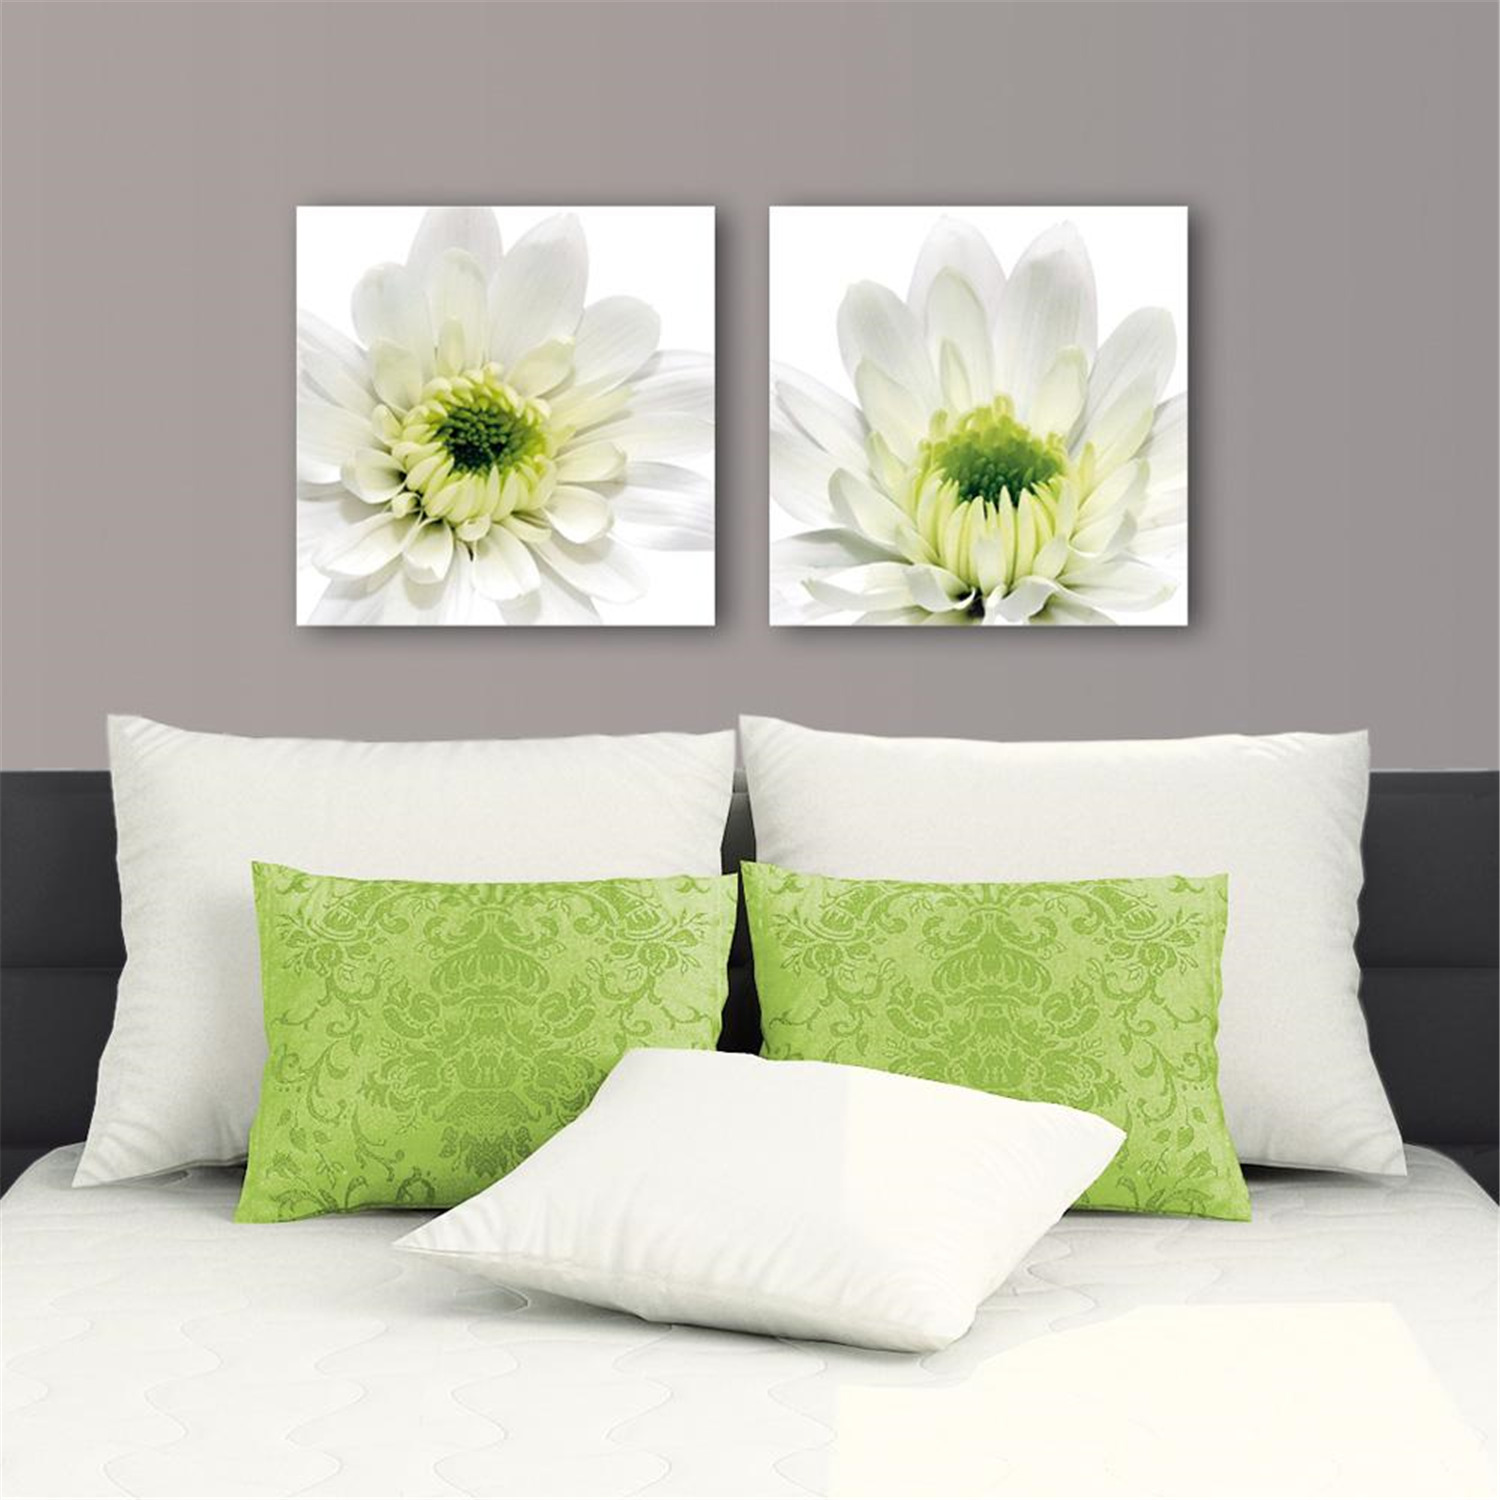 deco glass wall decor art on glass daisy set of 2 each. Black Bedroom Furniture Sets. Home Design Ideas